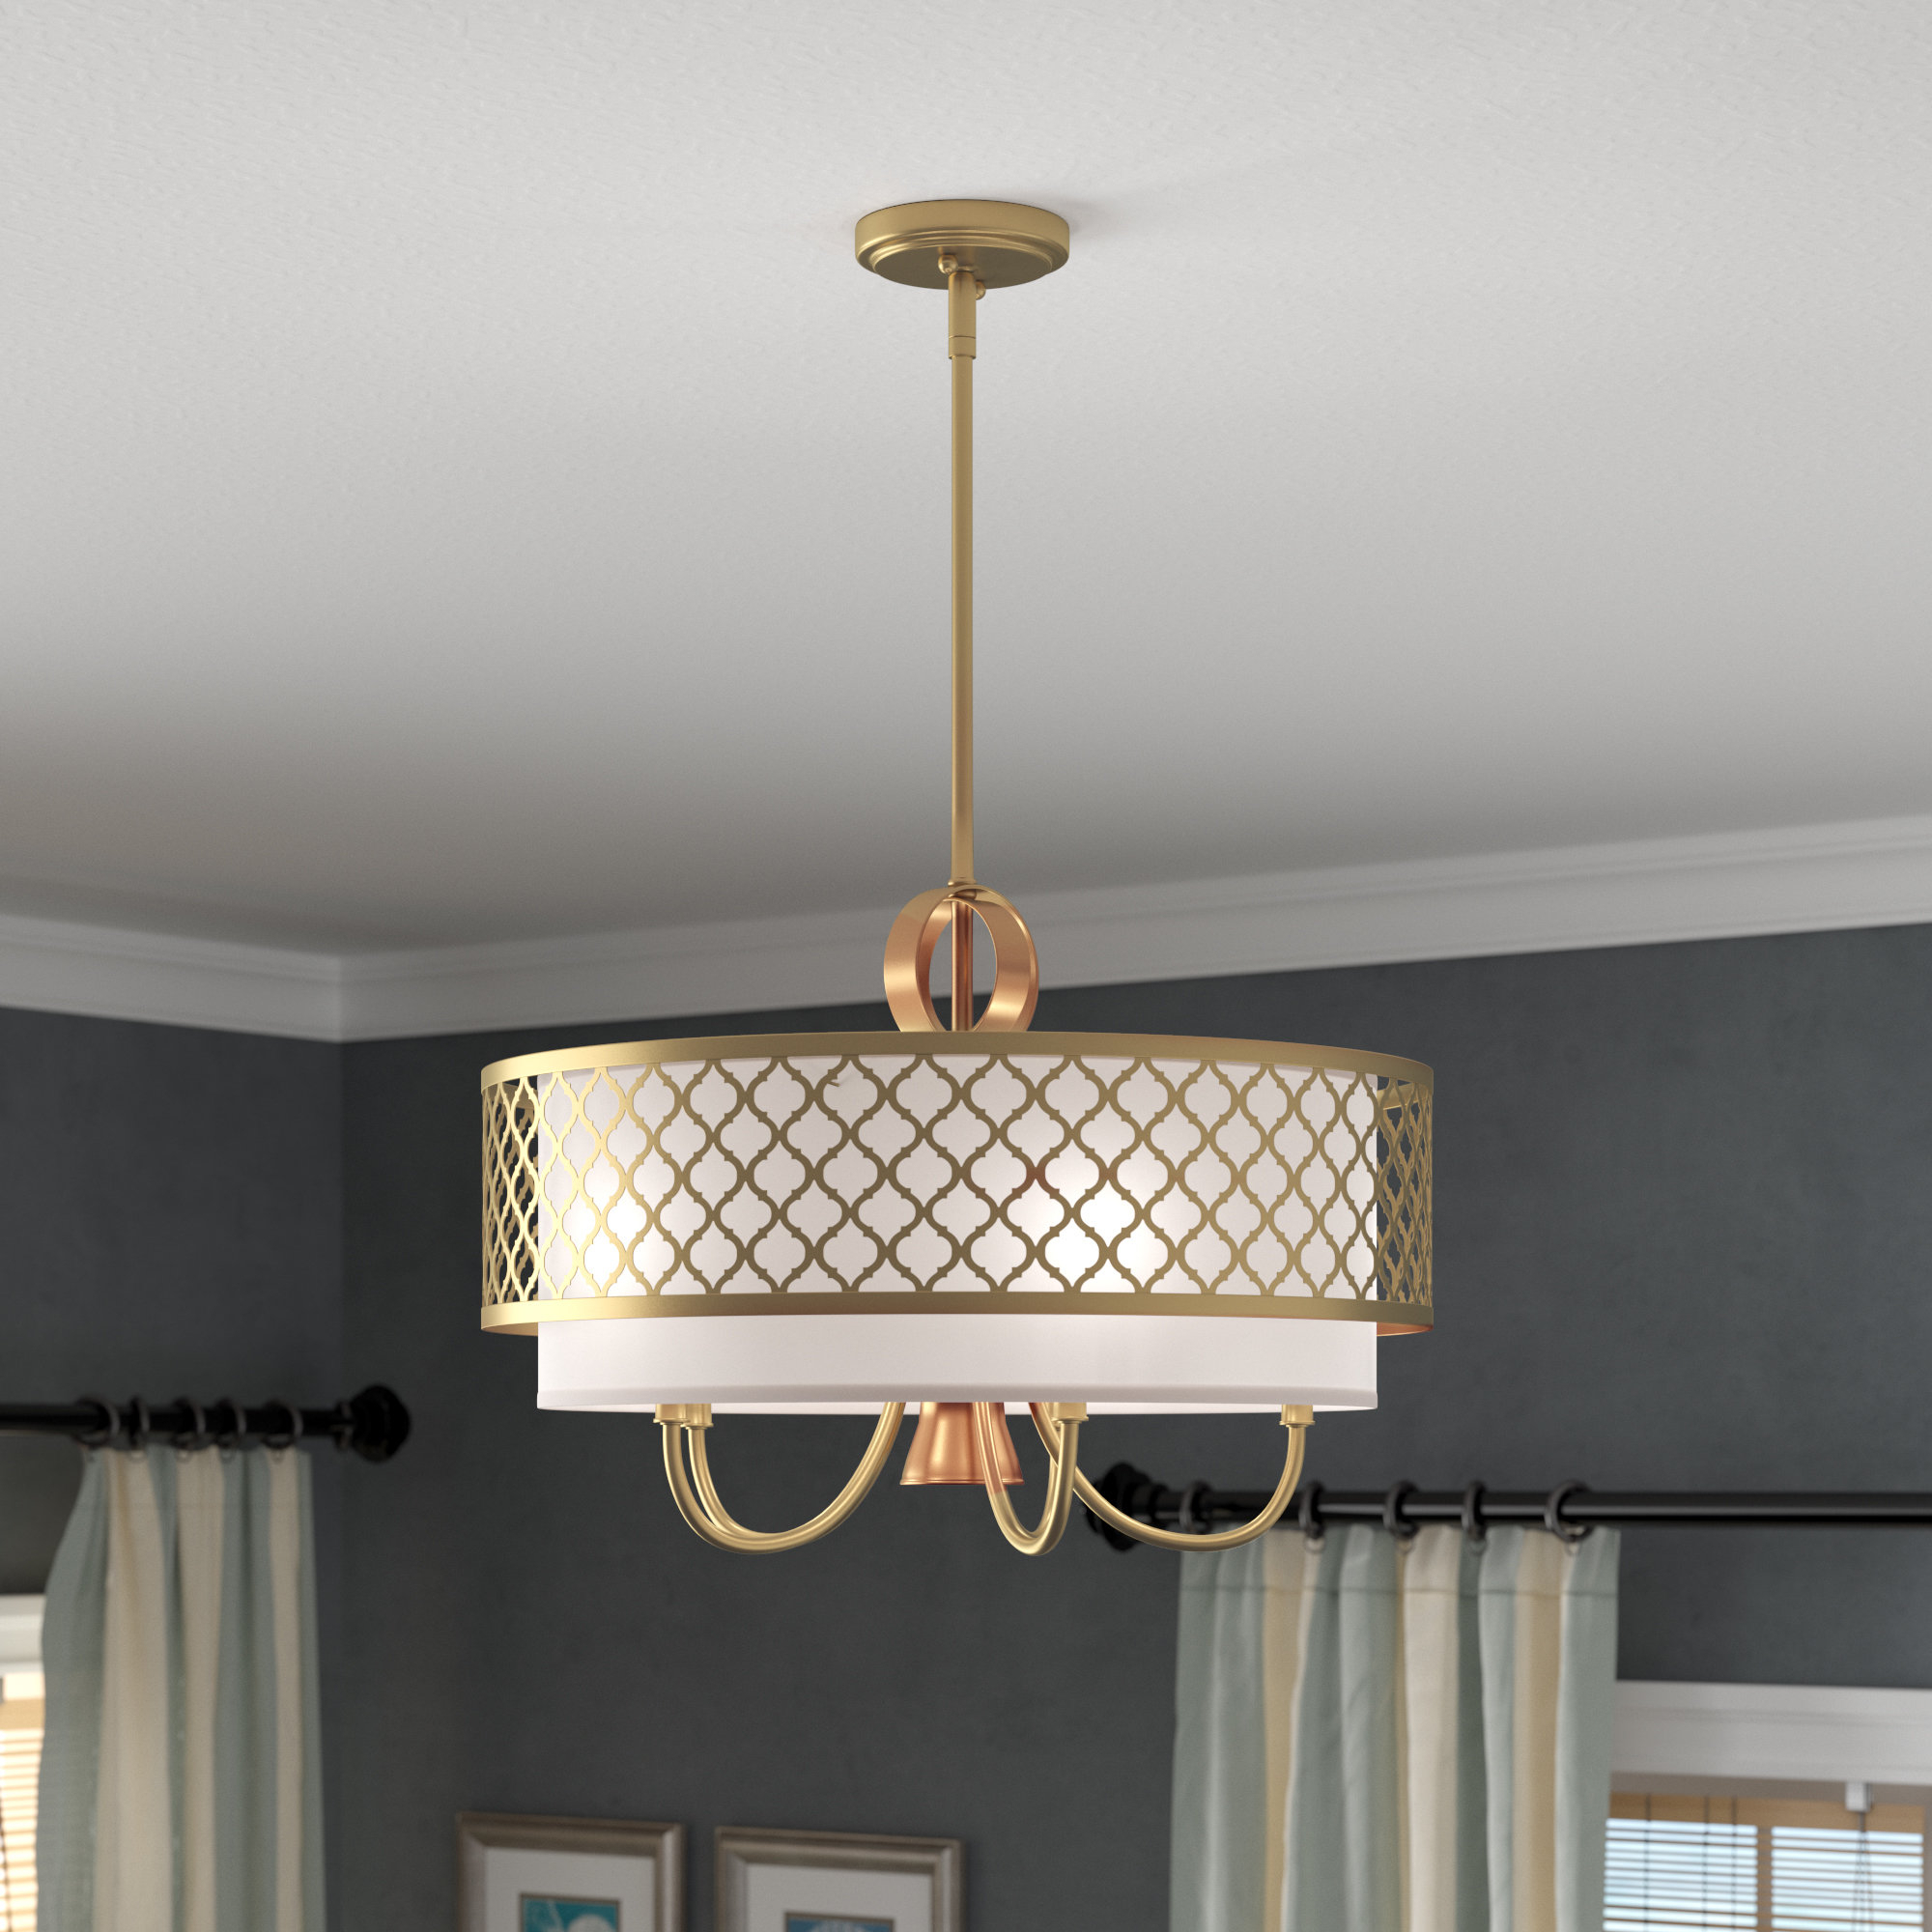 Hermione 5 Light Drum Chandeliers Pertaining To Best And Newest Tymvou 5 Light Drum Chandelier (View 7 of 25)